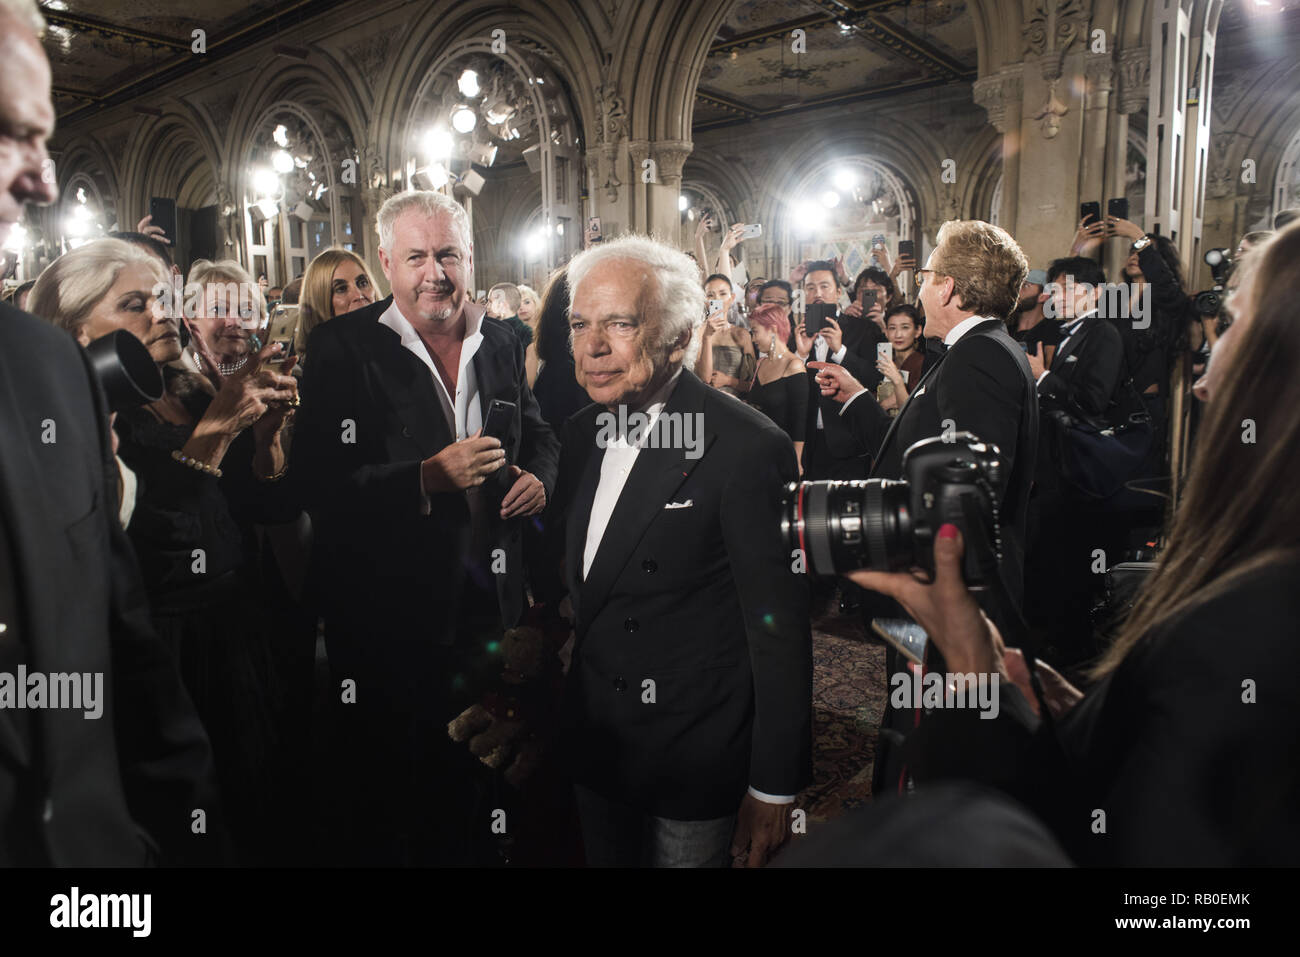 Fashion Designer Ralph Lauren Walks The Runway For Ralph Lauren Fashion Show During New York Fashion Week On September 7 2018 In New York City 7th Sep 2018 Credit Wonwoo Lee Zuma Wire Alamy